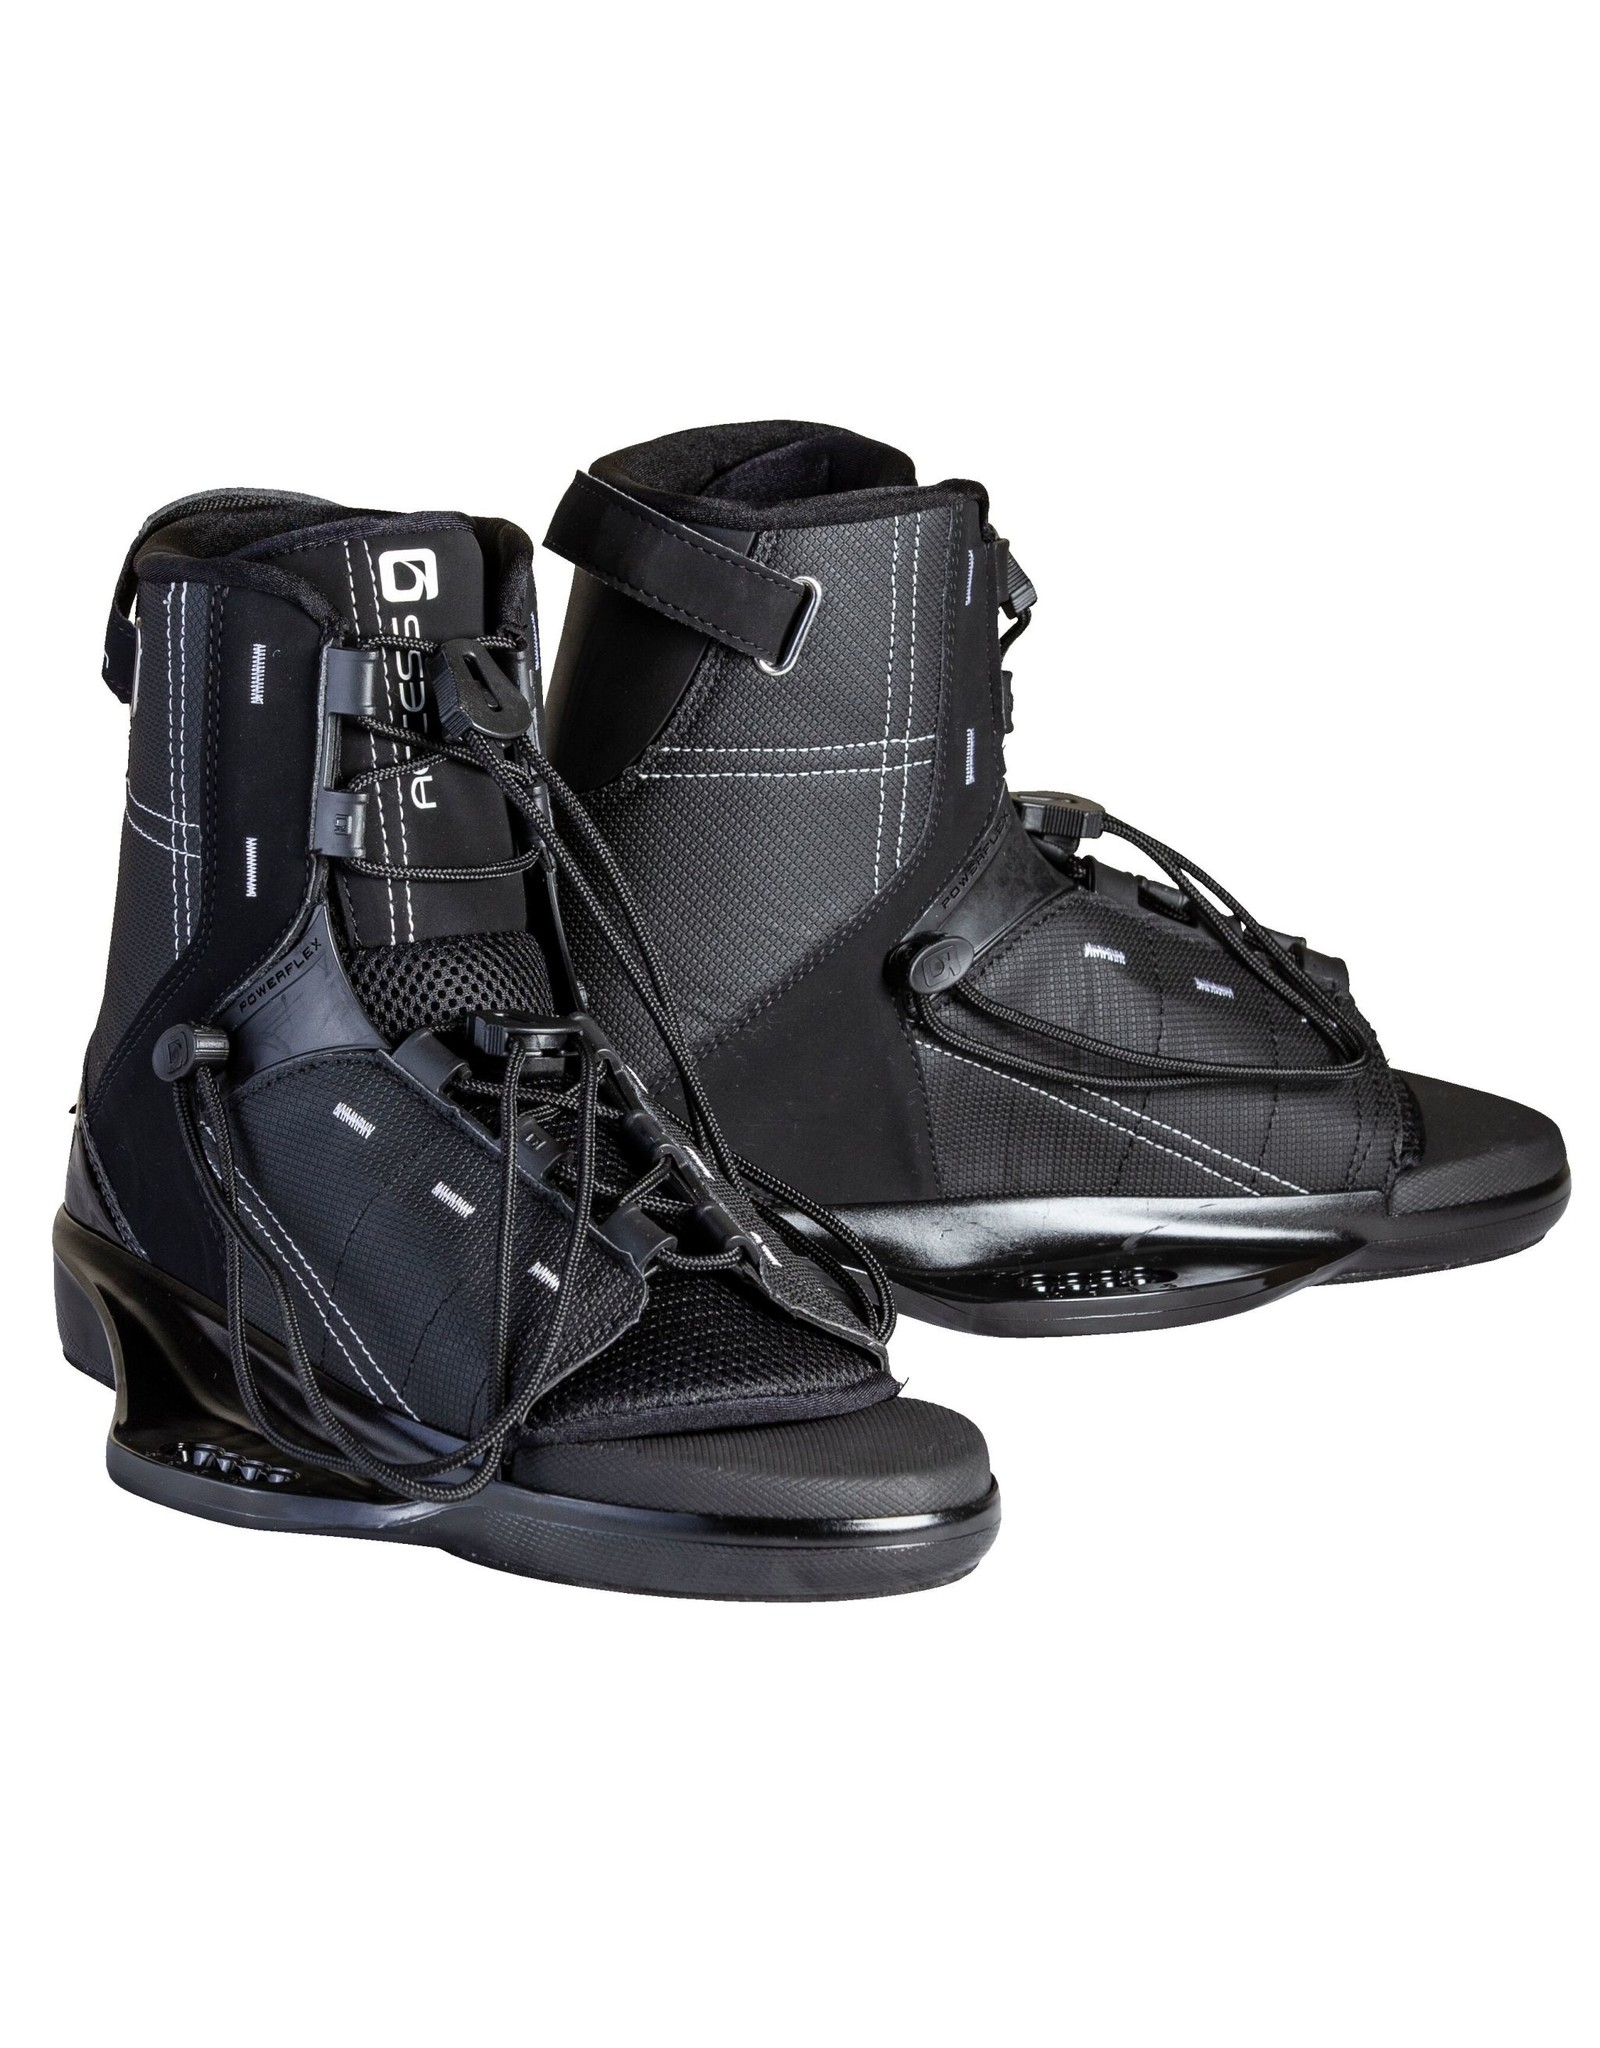 O'Brien 2021 Access Wakeboard Boot